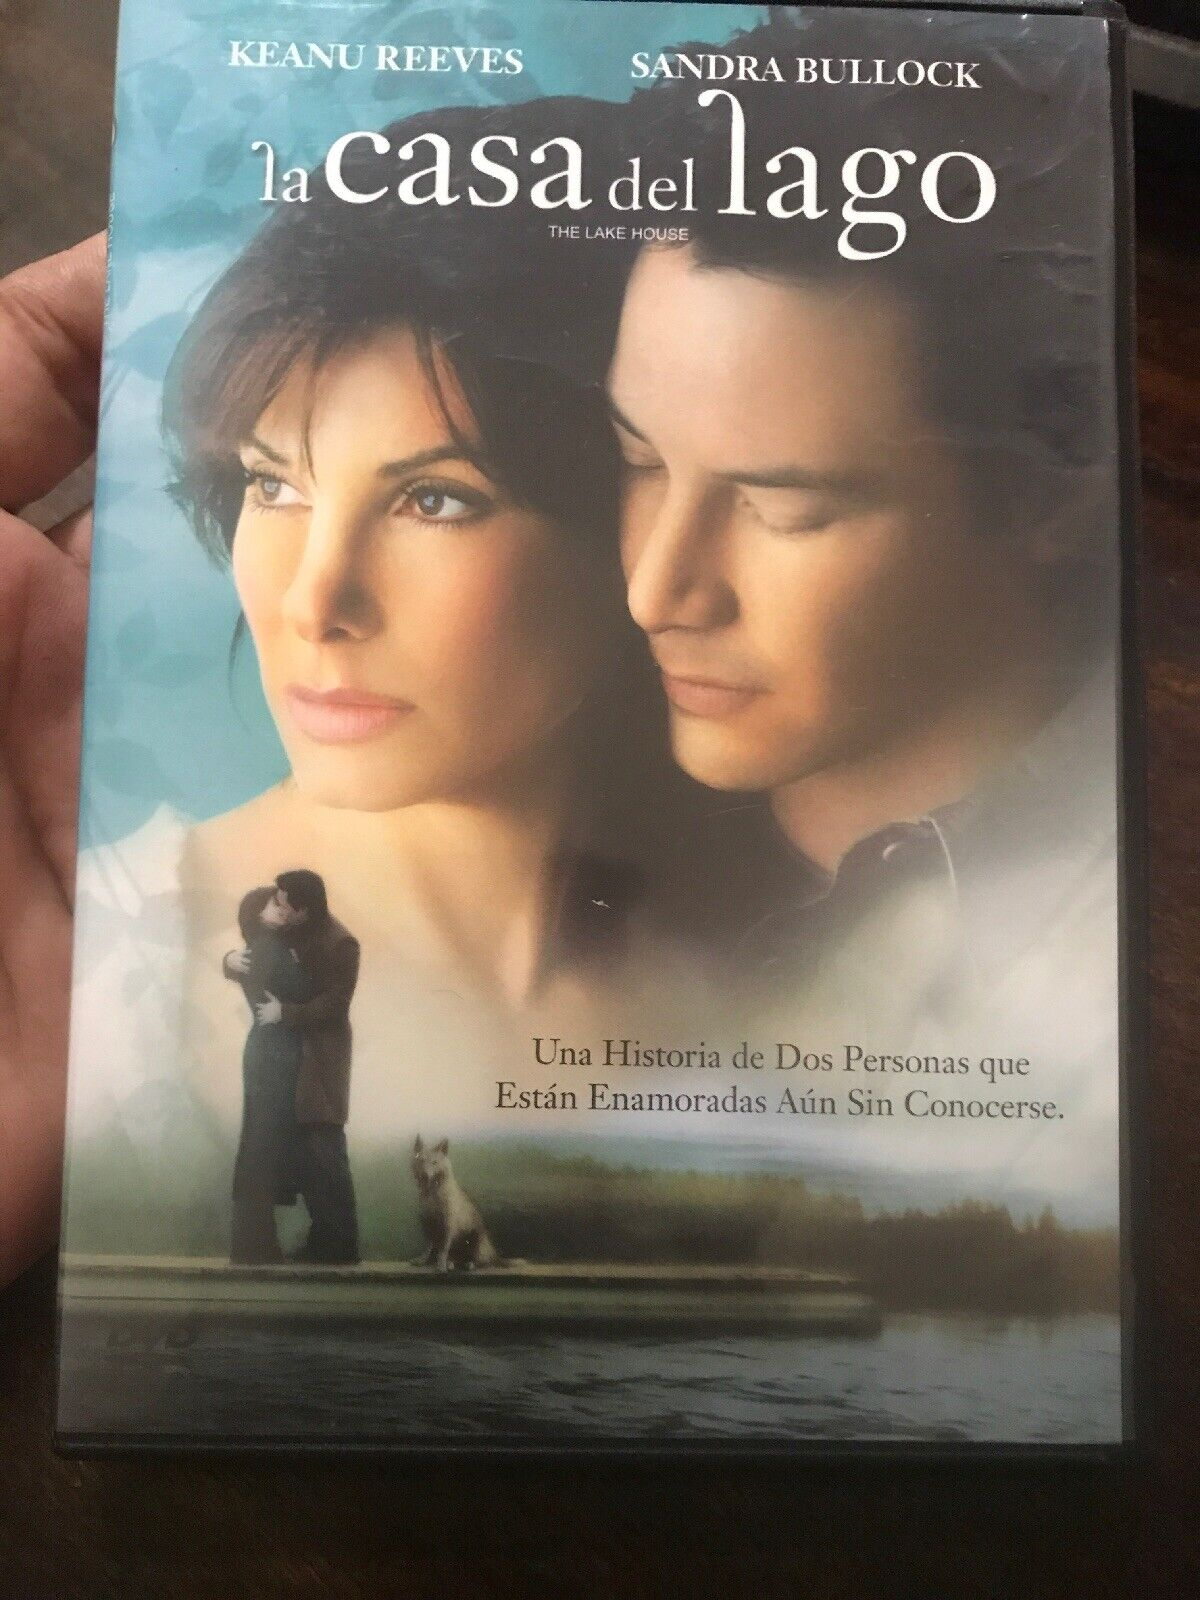 The House Of Sin Dvd la casa del lago (the lake house), keanu reeves, spanish dvd, exc condition  (a5)